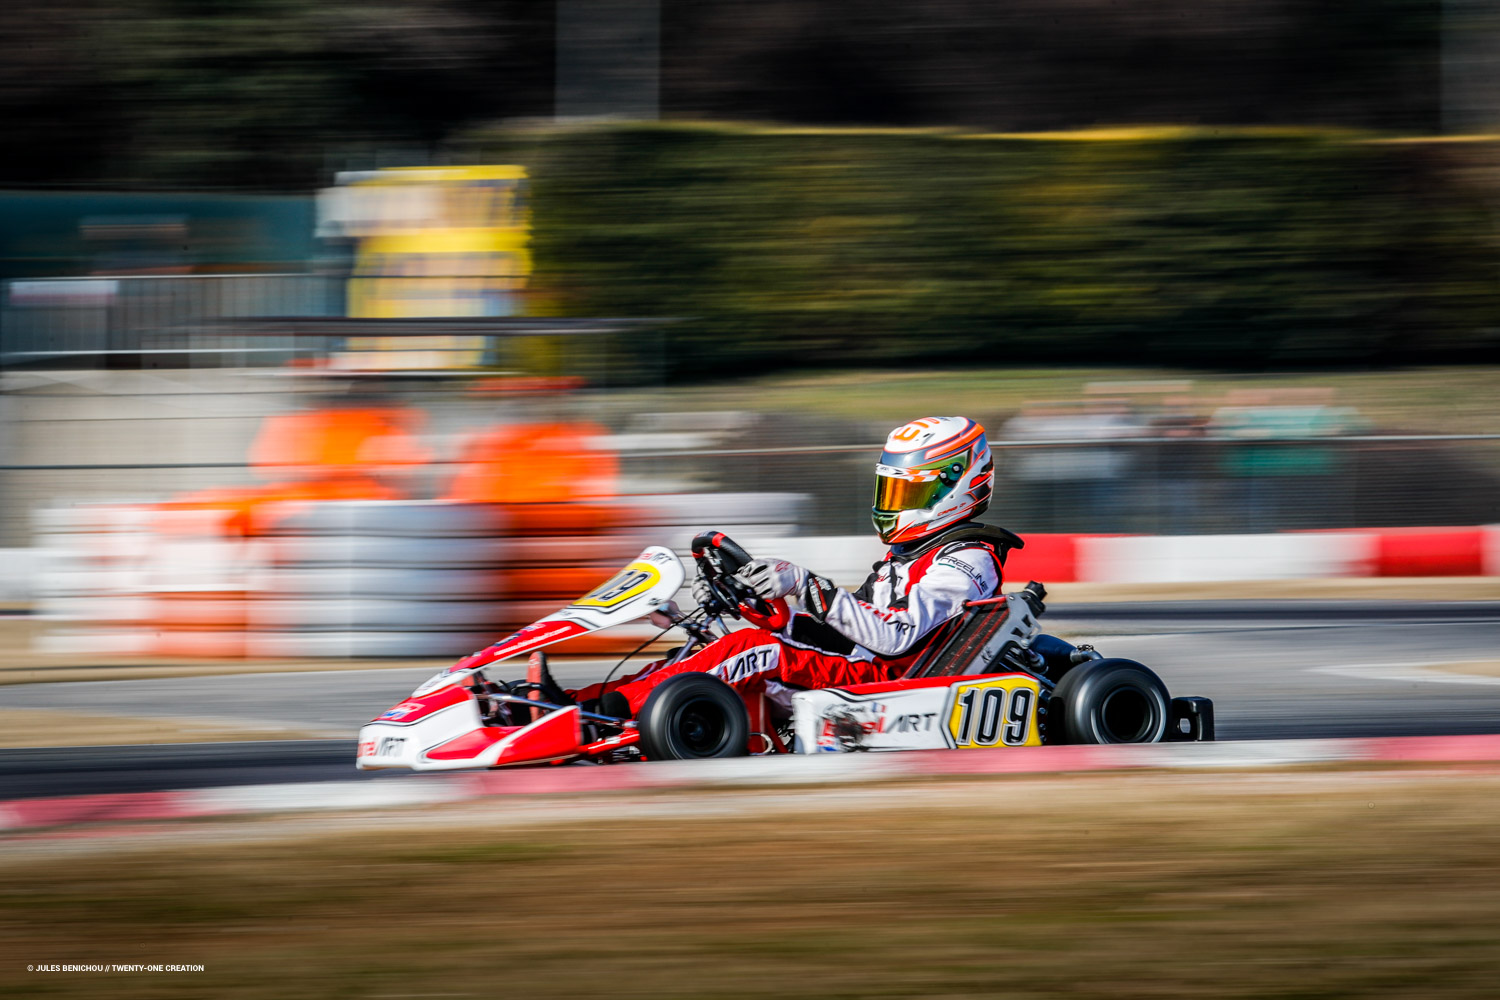 09-TANIC-HARRY-TANIC-CRAIG-BIREL-ART-TM-BRIDGESTONE-WINTERCUP-LONATO-2019Twenty-One-Creation-3